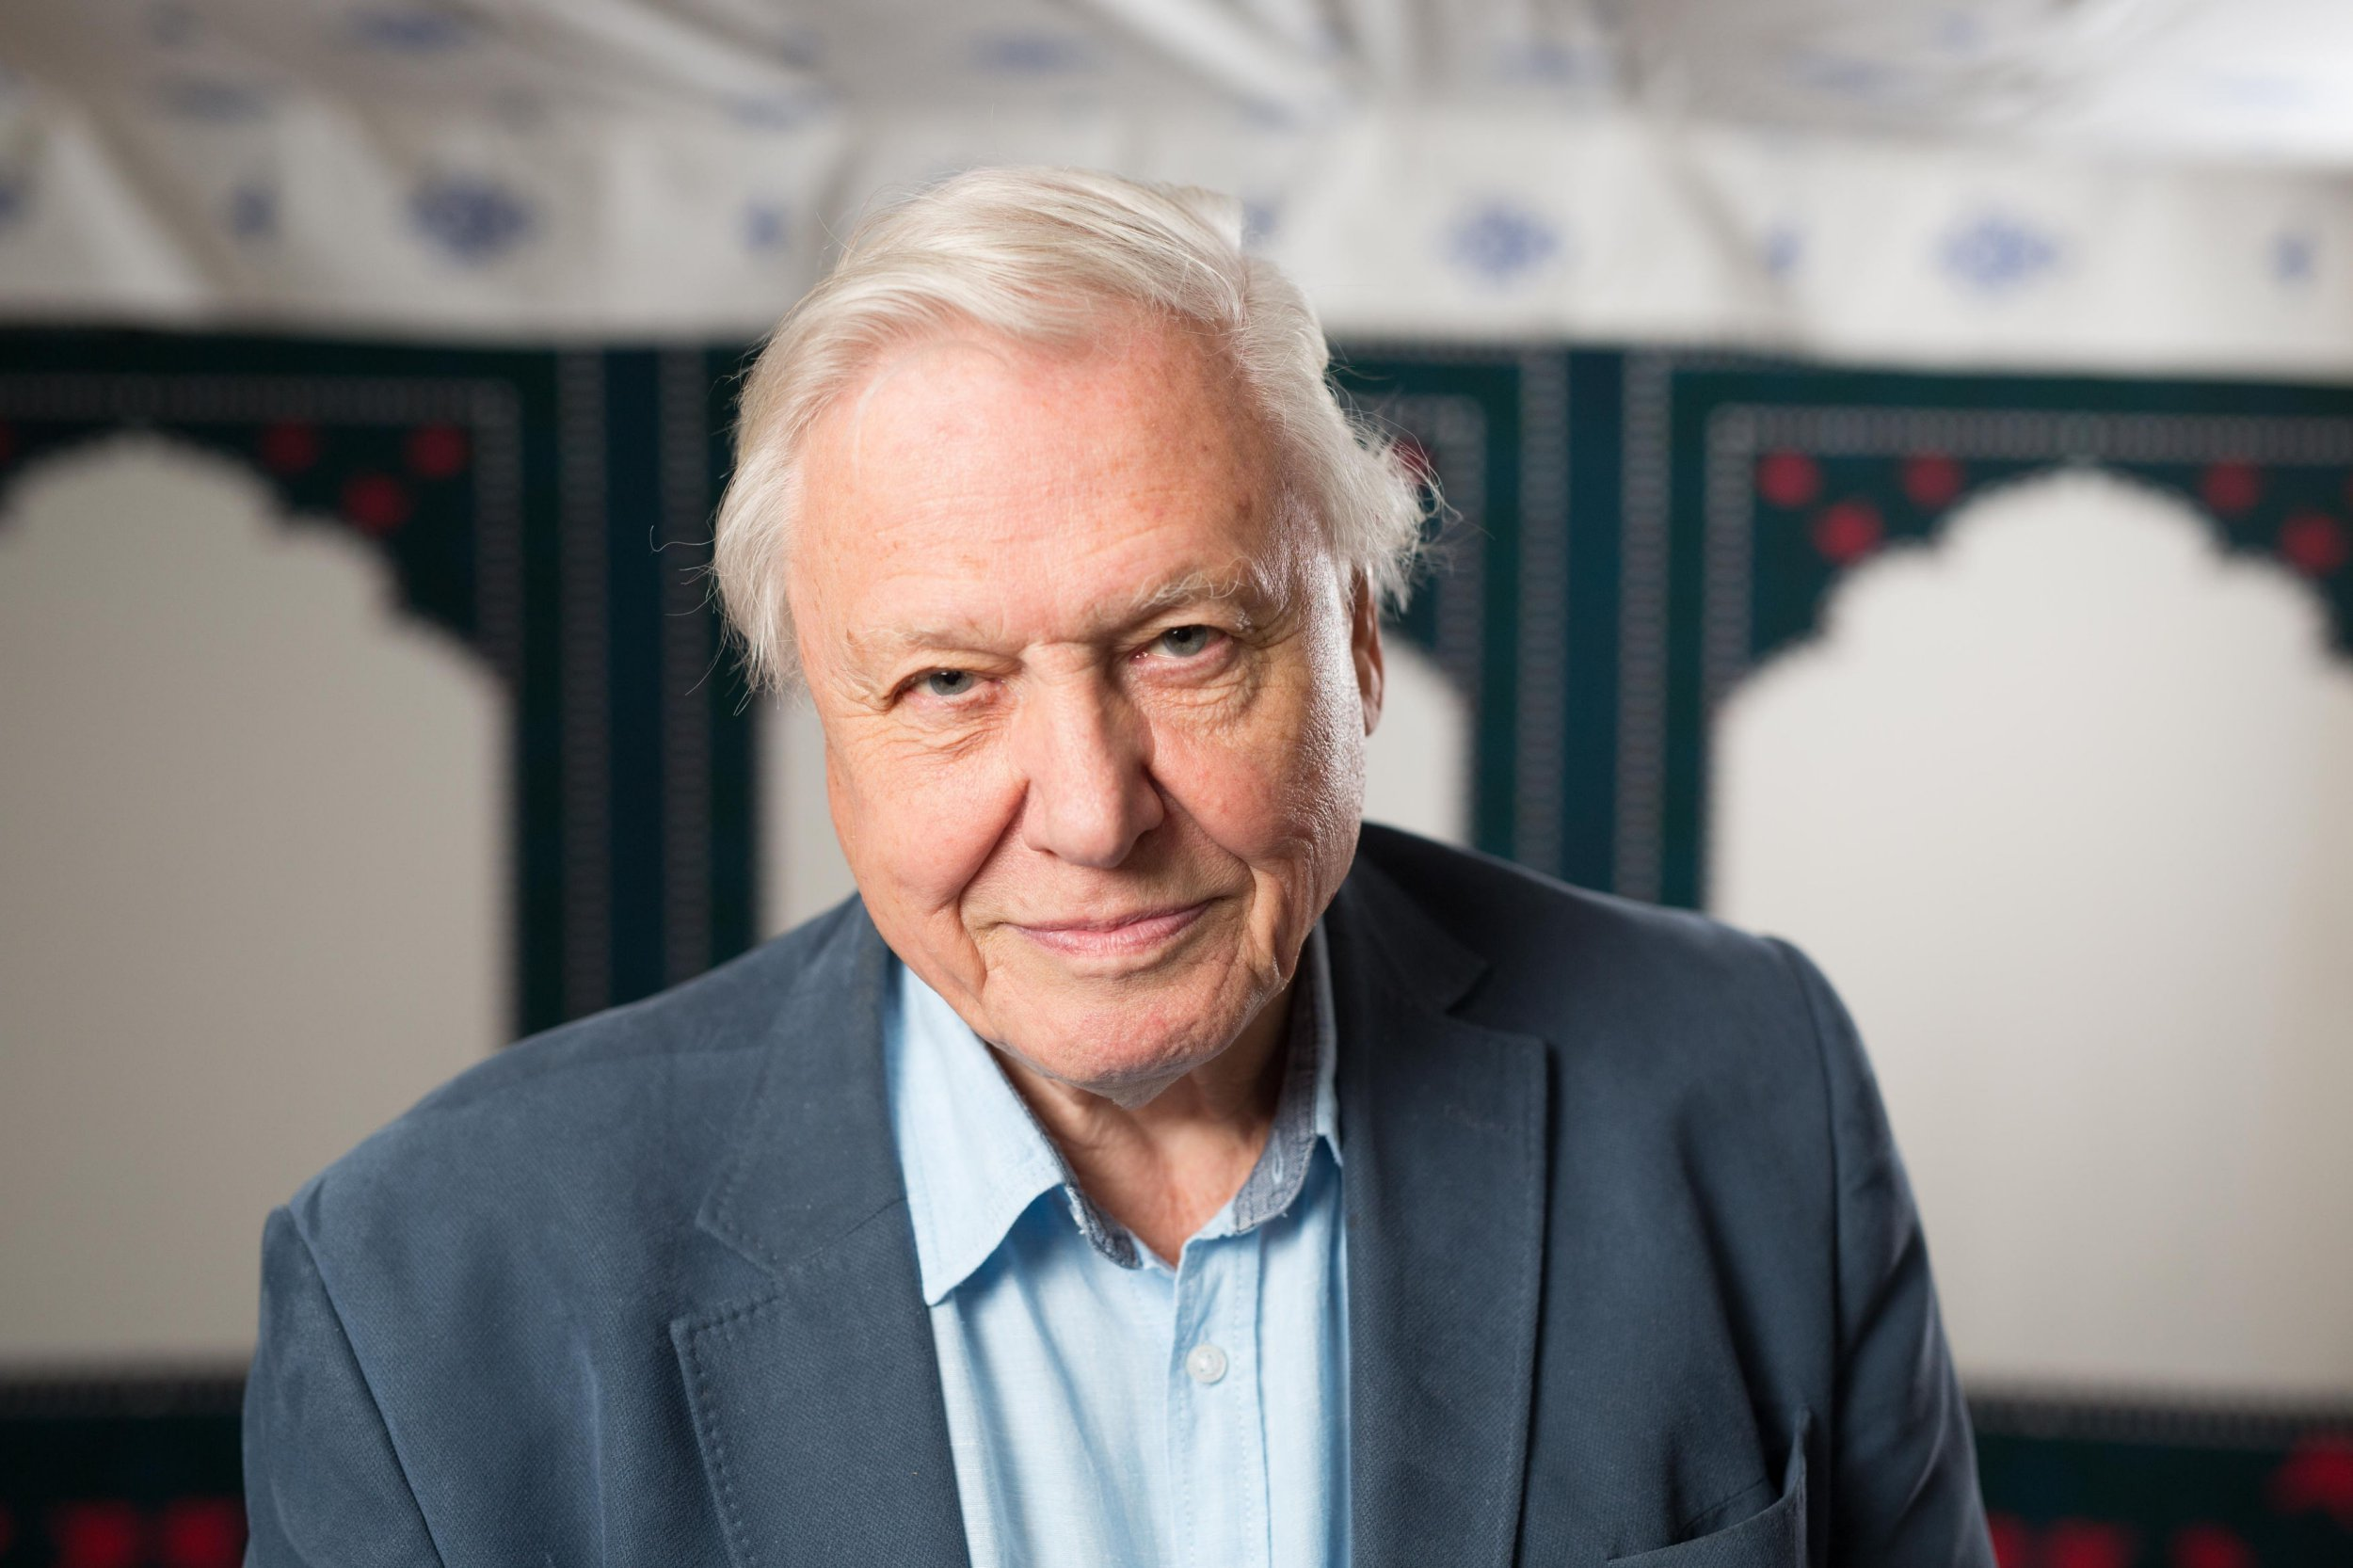 David Attenborough shows no signs of slowing down as he presents new wildlife show Dynasty